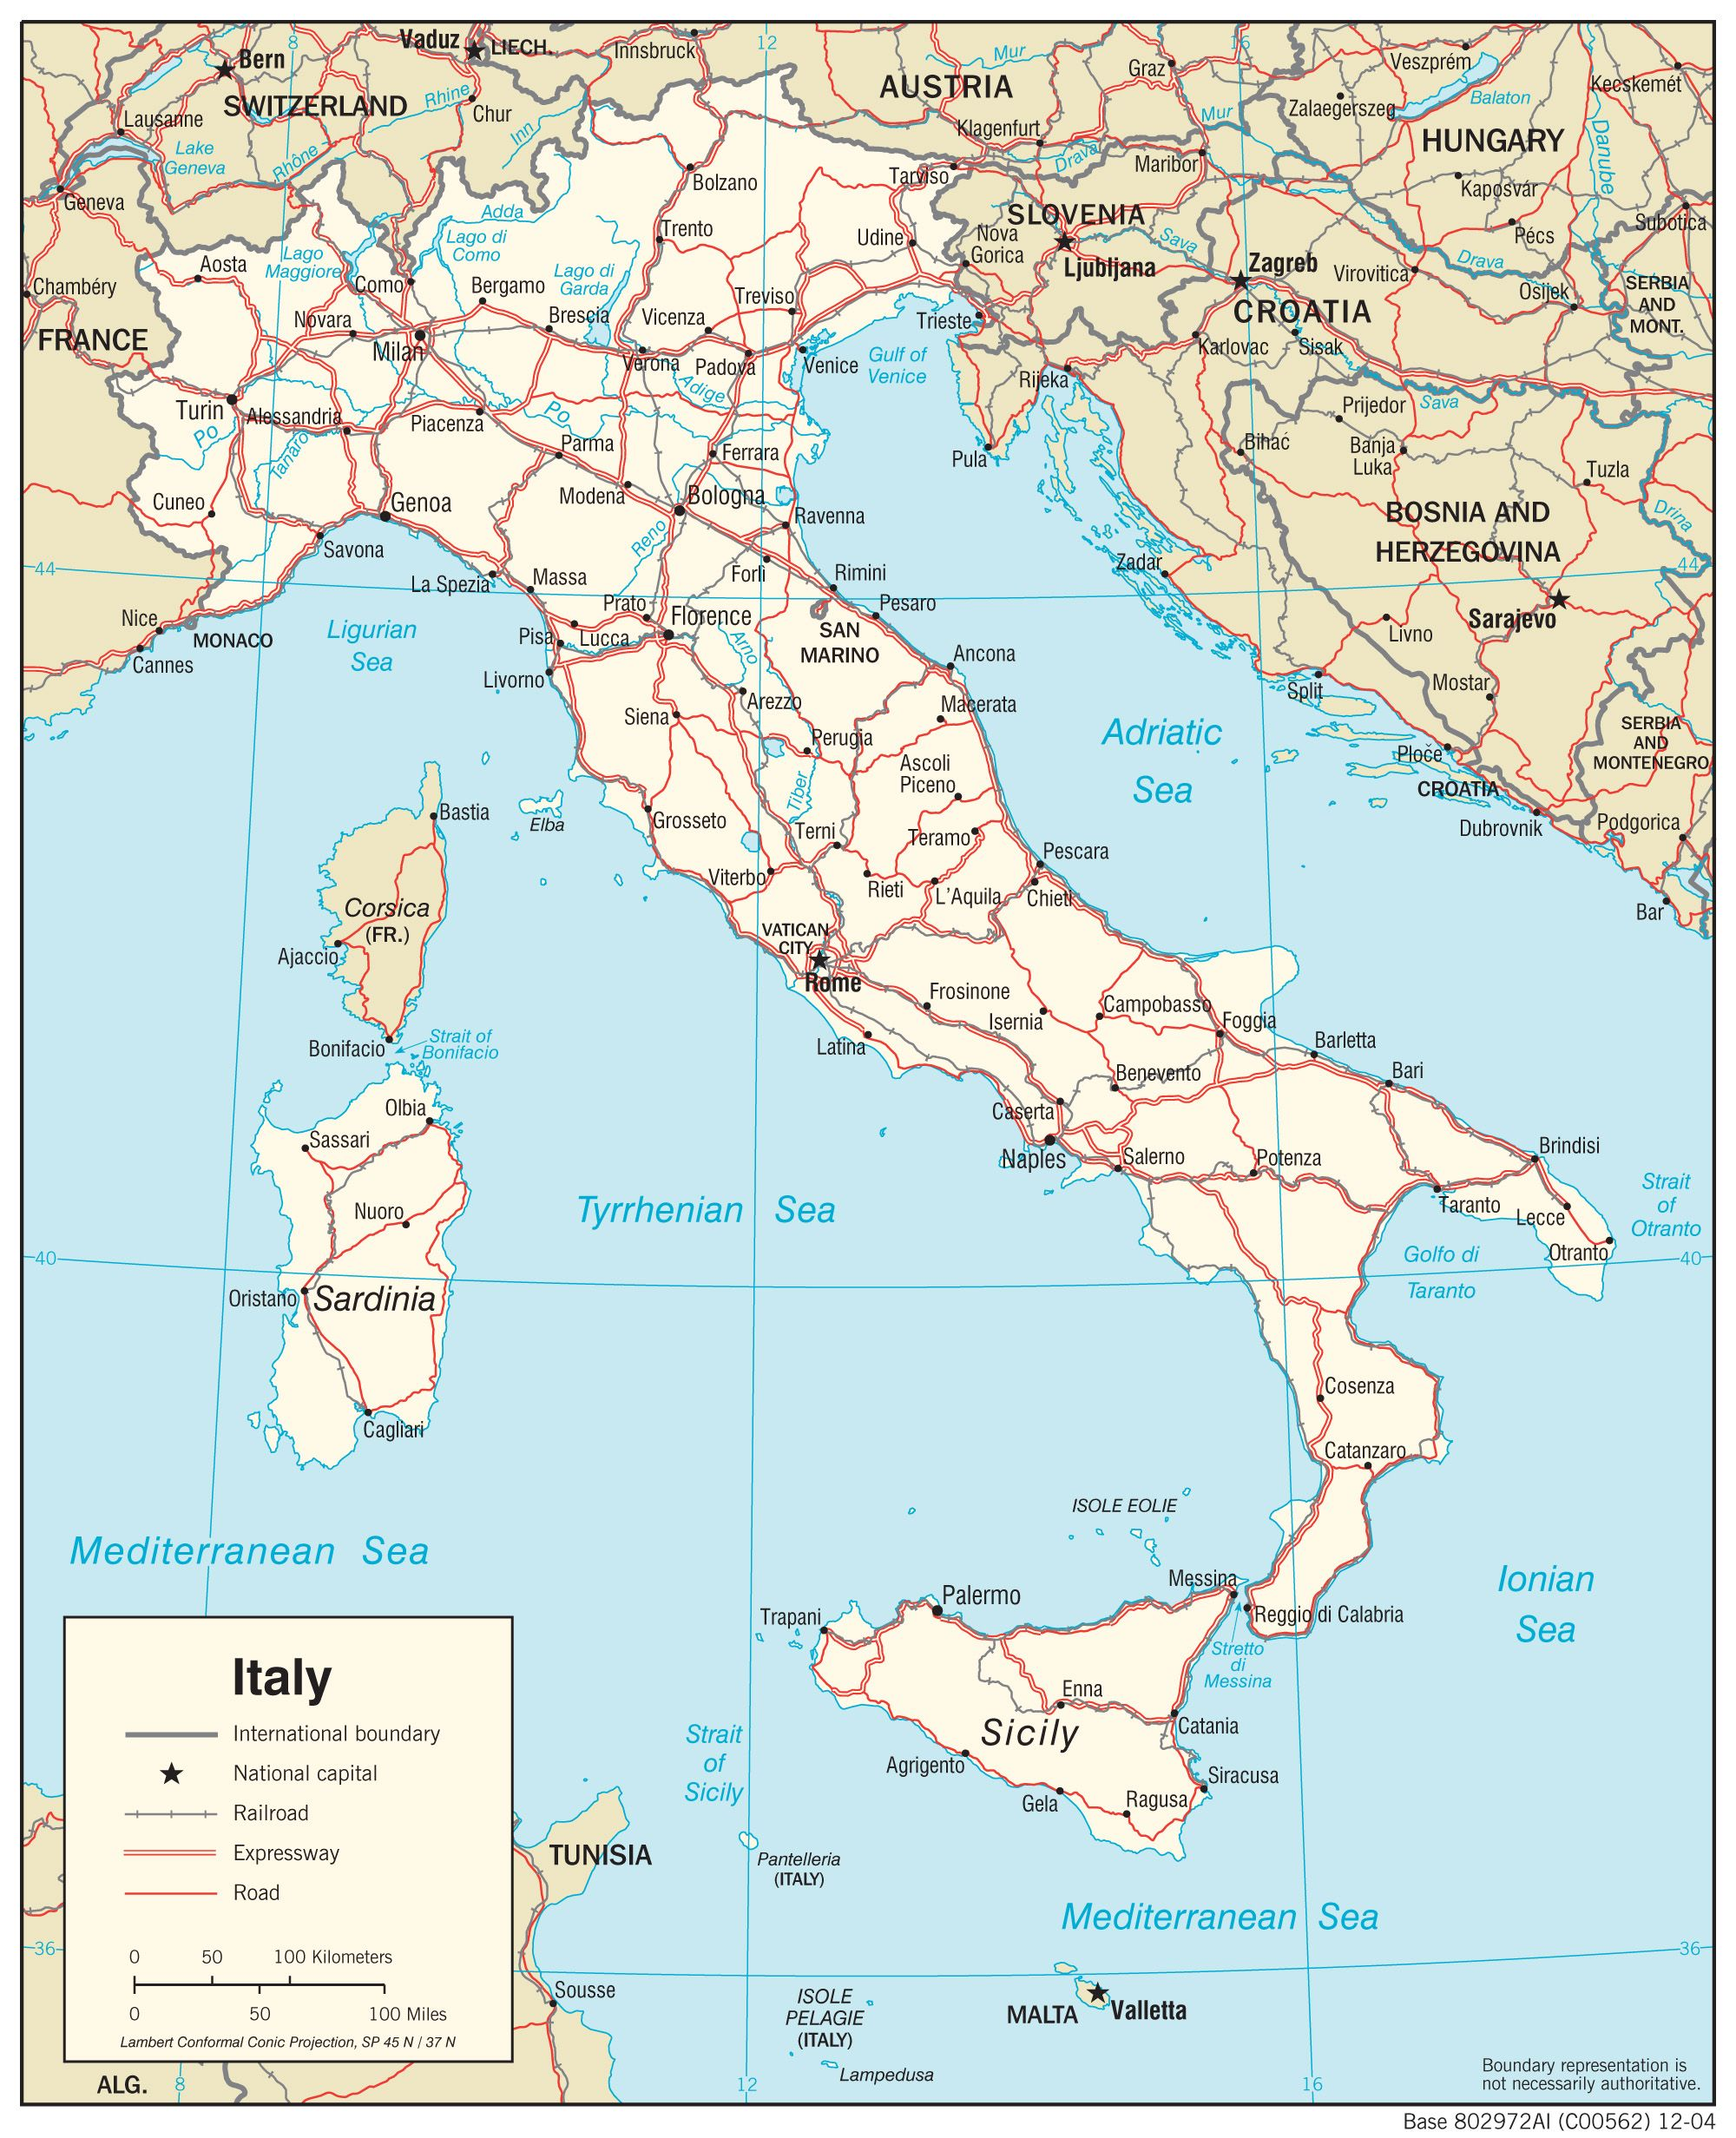 Large Map Of Italy.Map Of Italy Free Large Images Italy Map Italy Map Italy